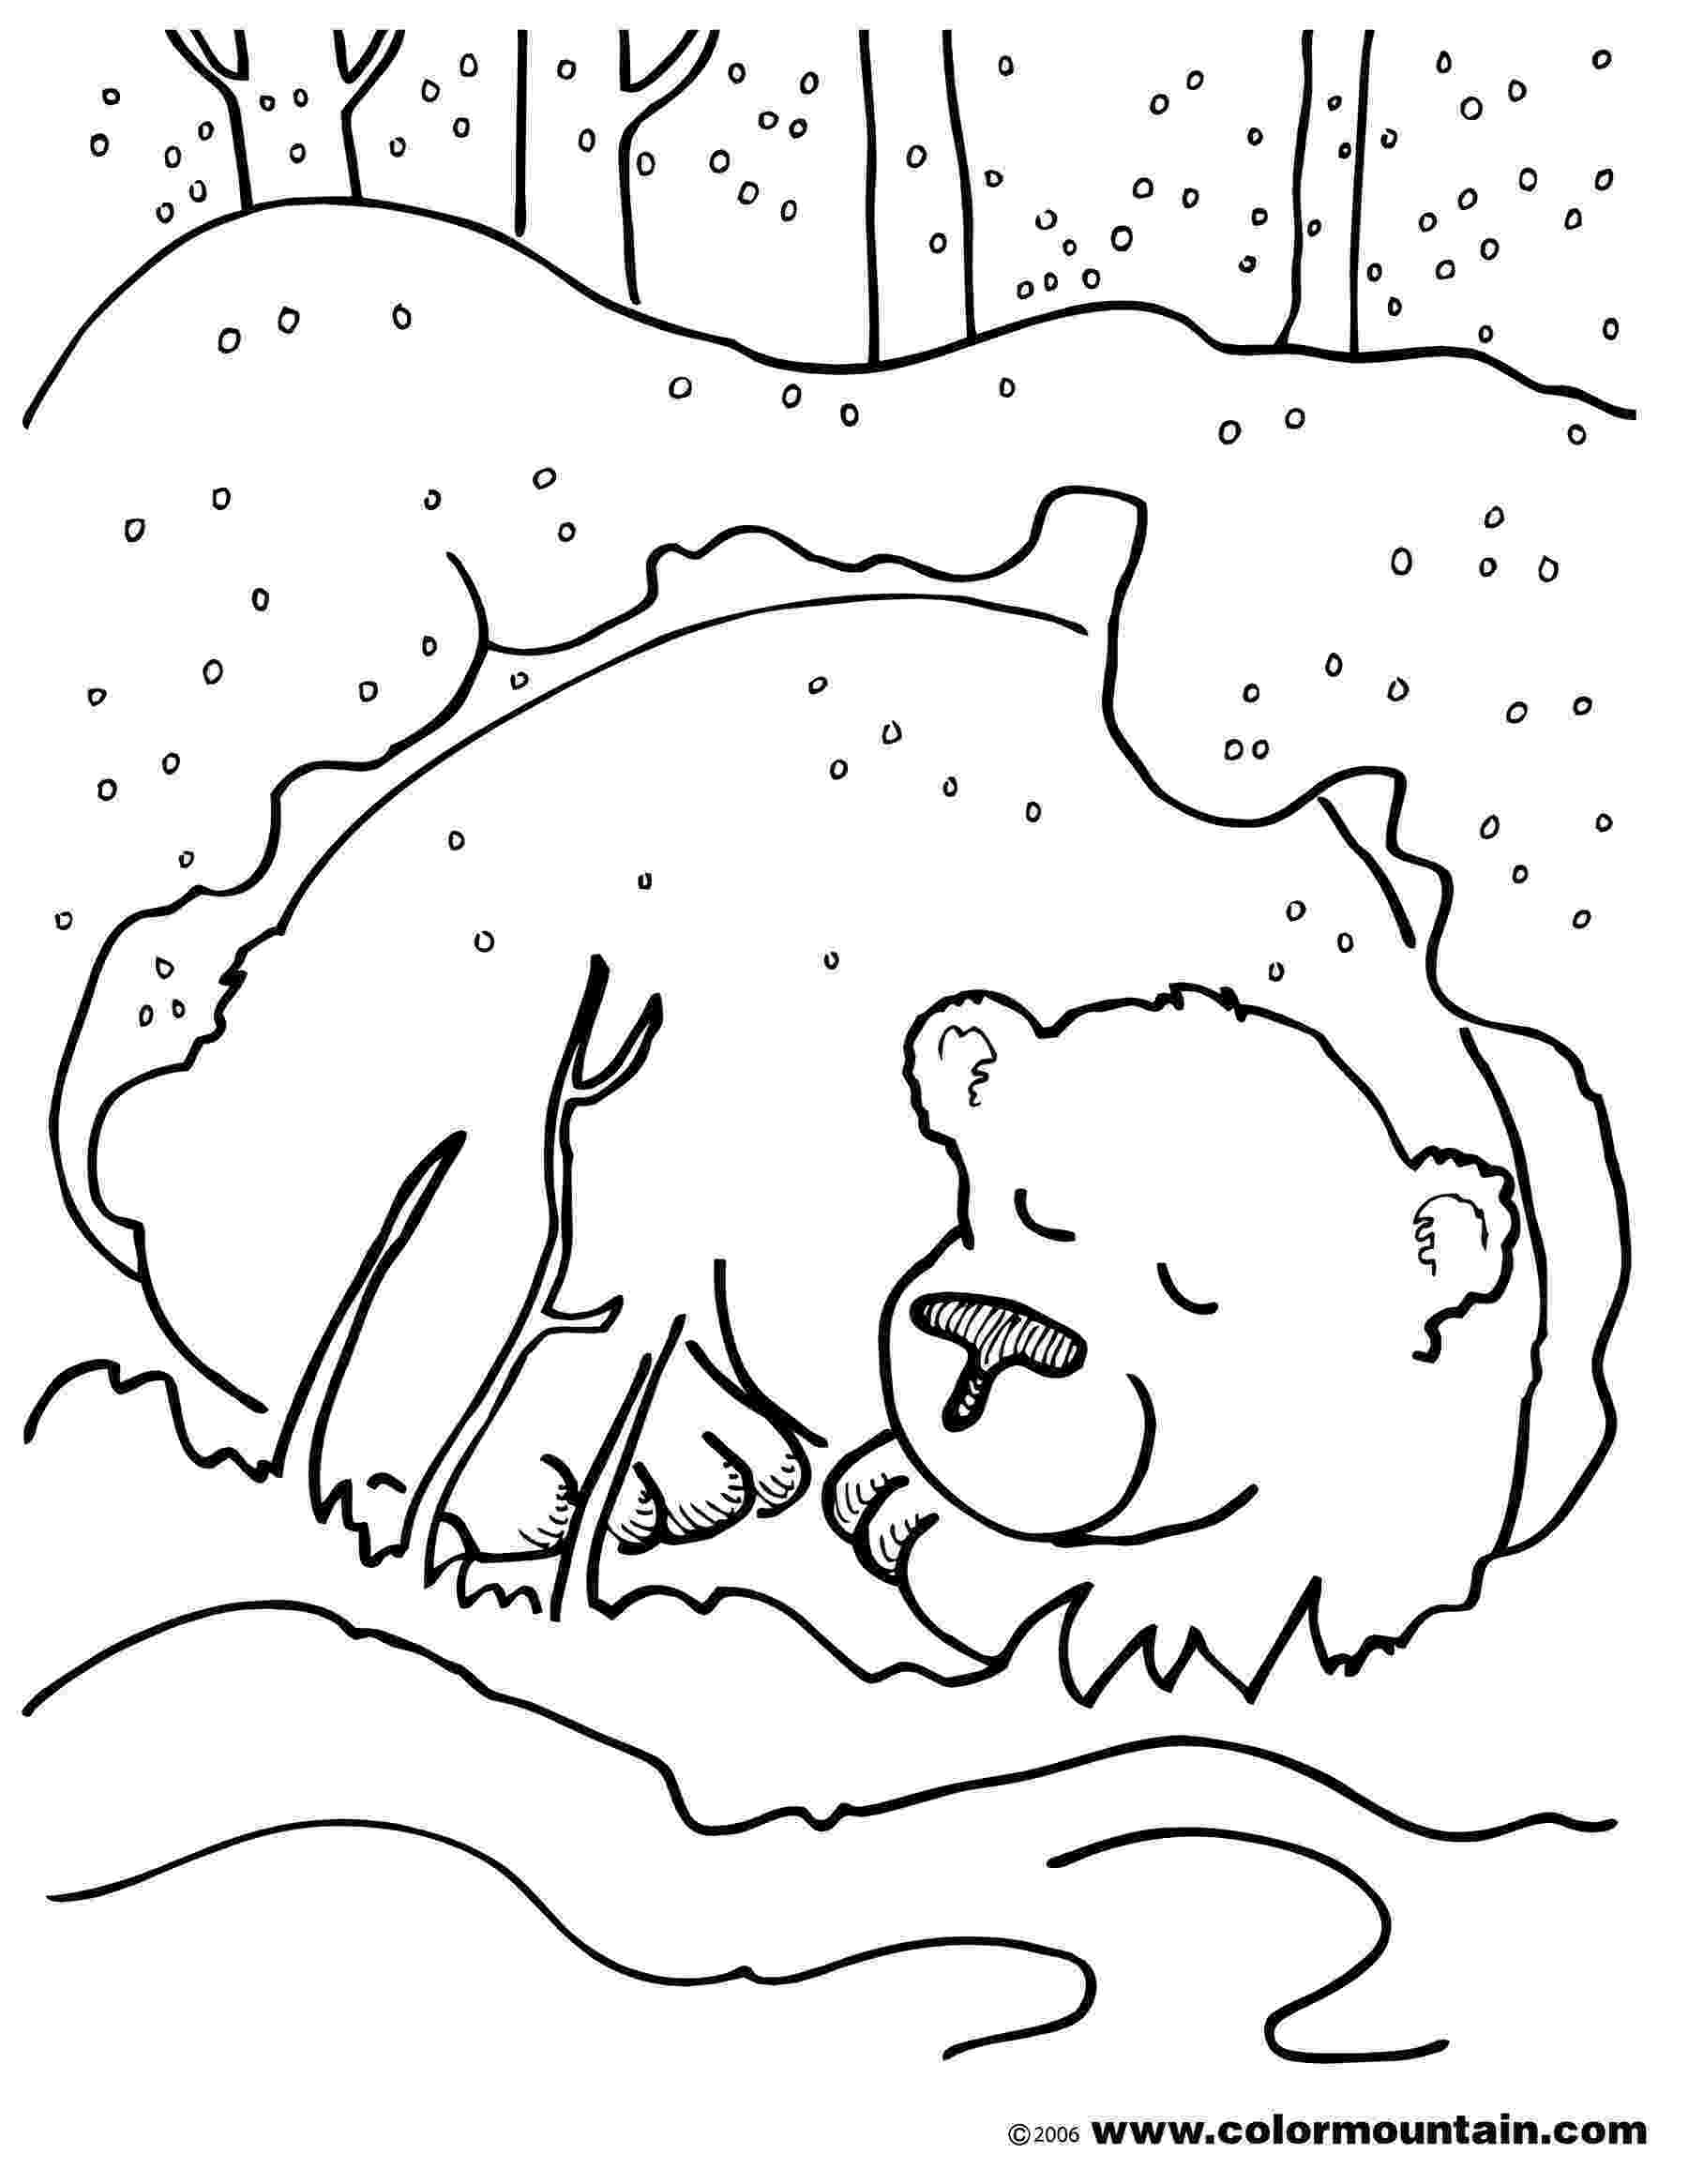 winter animals coloring pages winter bear coloring pages bear coloring pages winter pages coloring animals